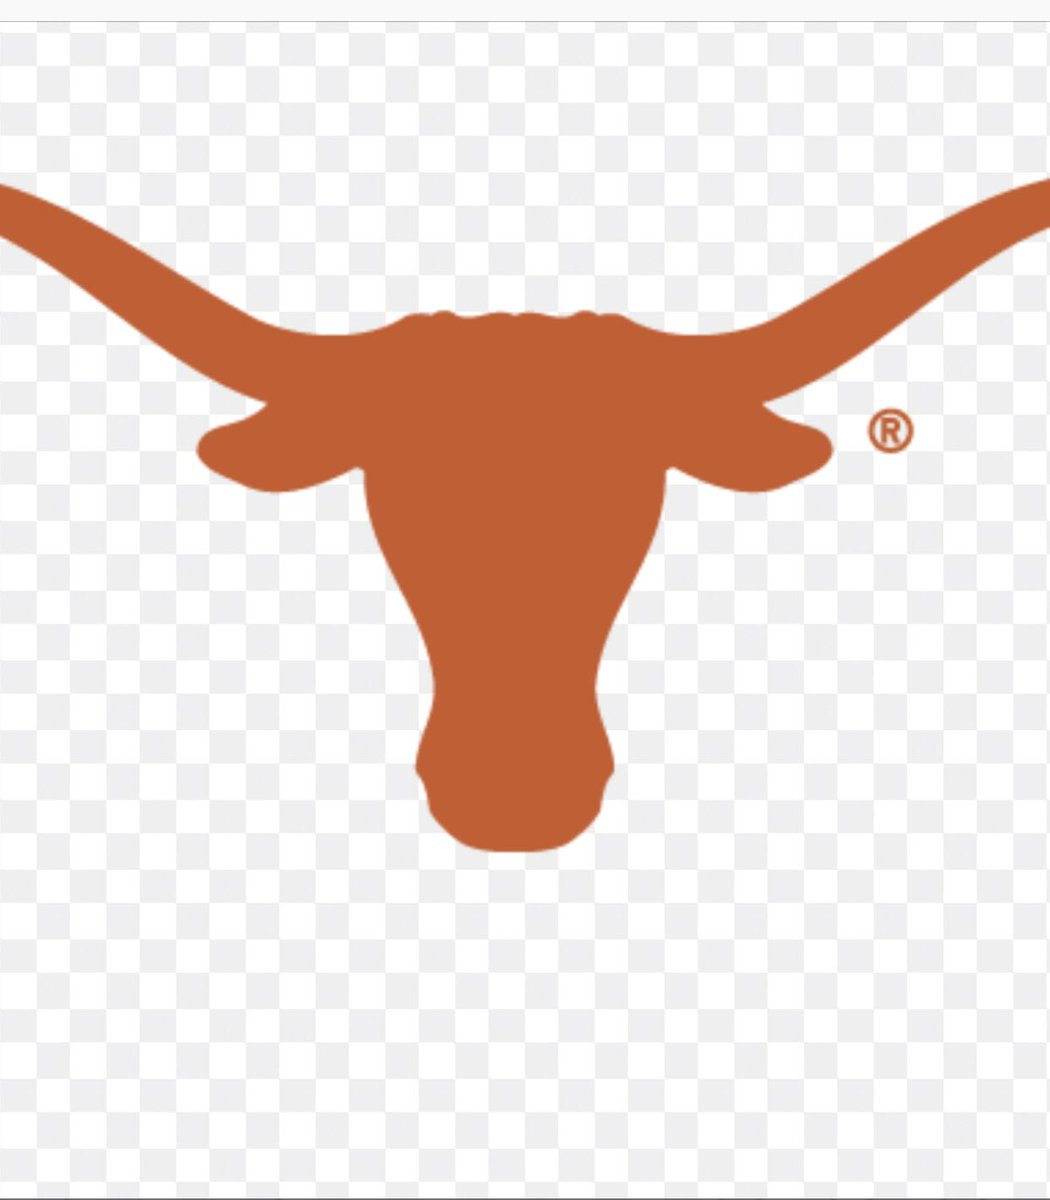 Blessed and thankful to recieve my fourth offer from the University of Texas #HookEm @therealkwat @therealkwat<br>http://pic.twitter.com/9ap52p4qr0